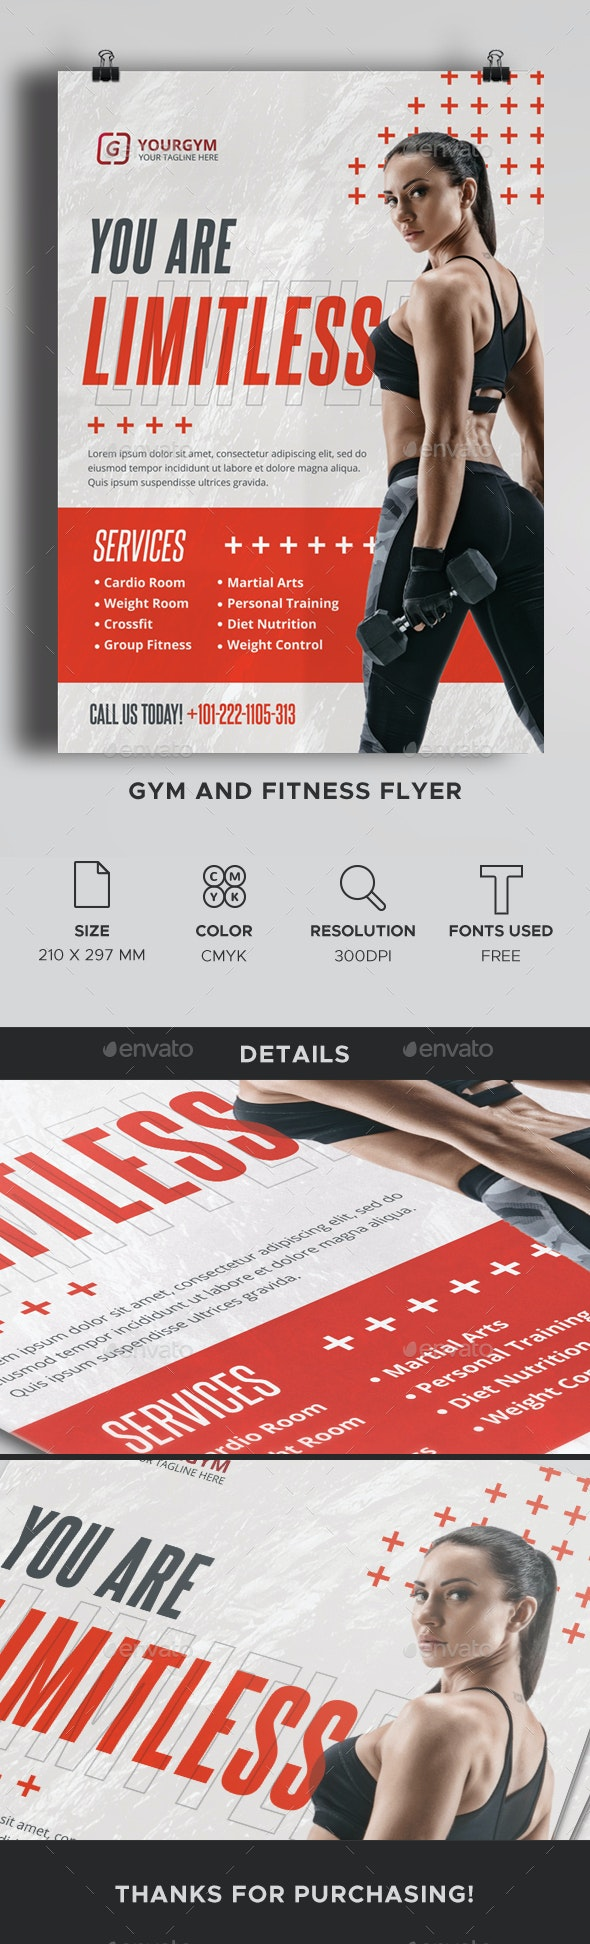 Gym and Fitness Flyer - Corporate Flyers